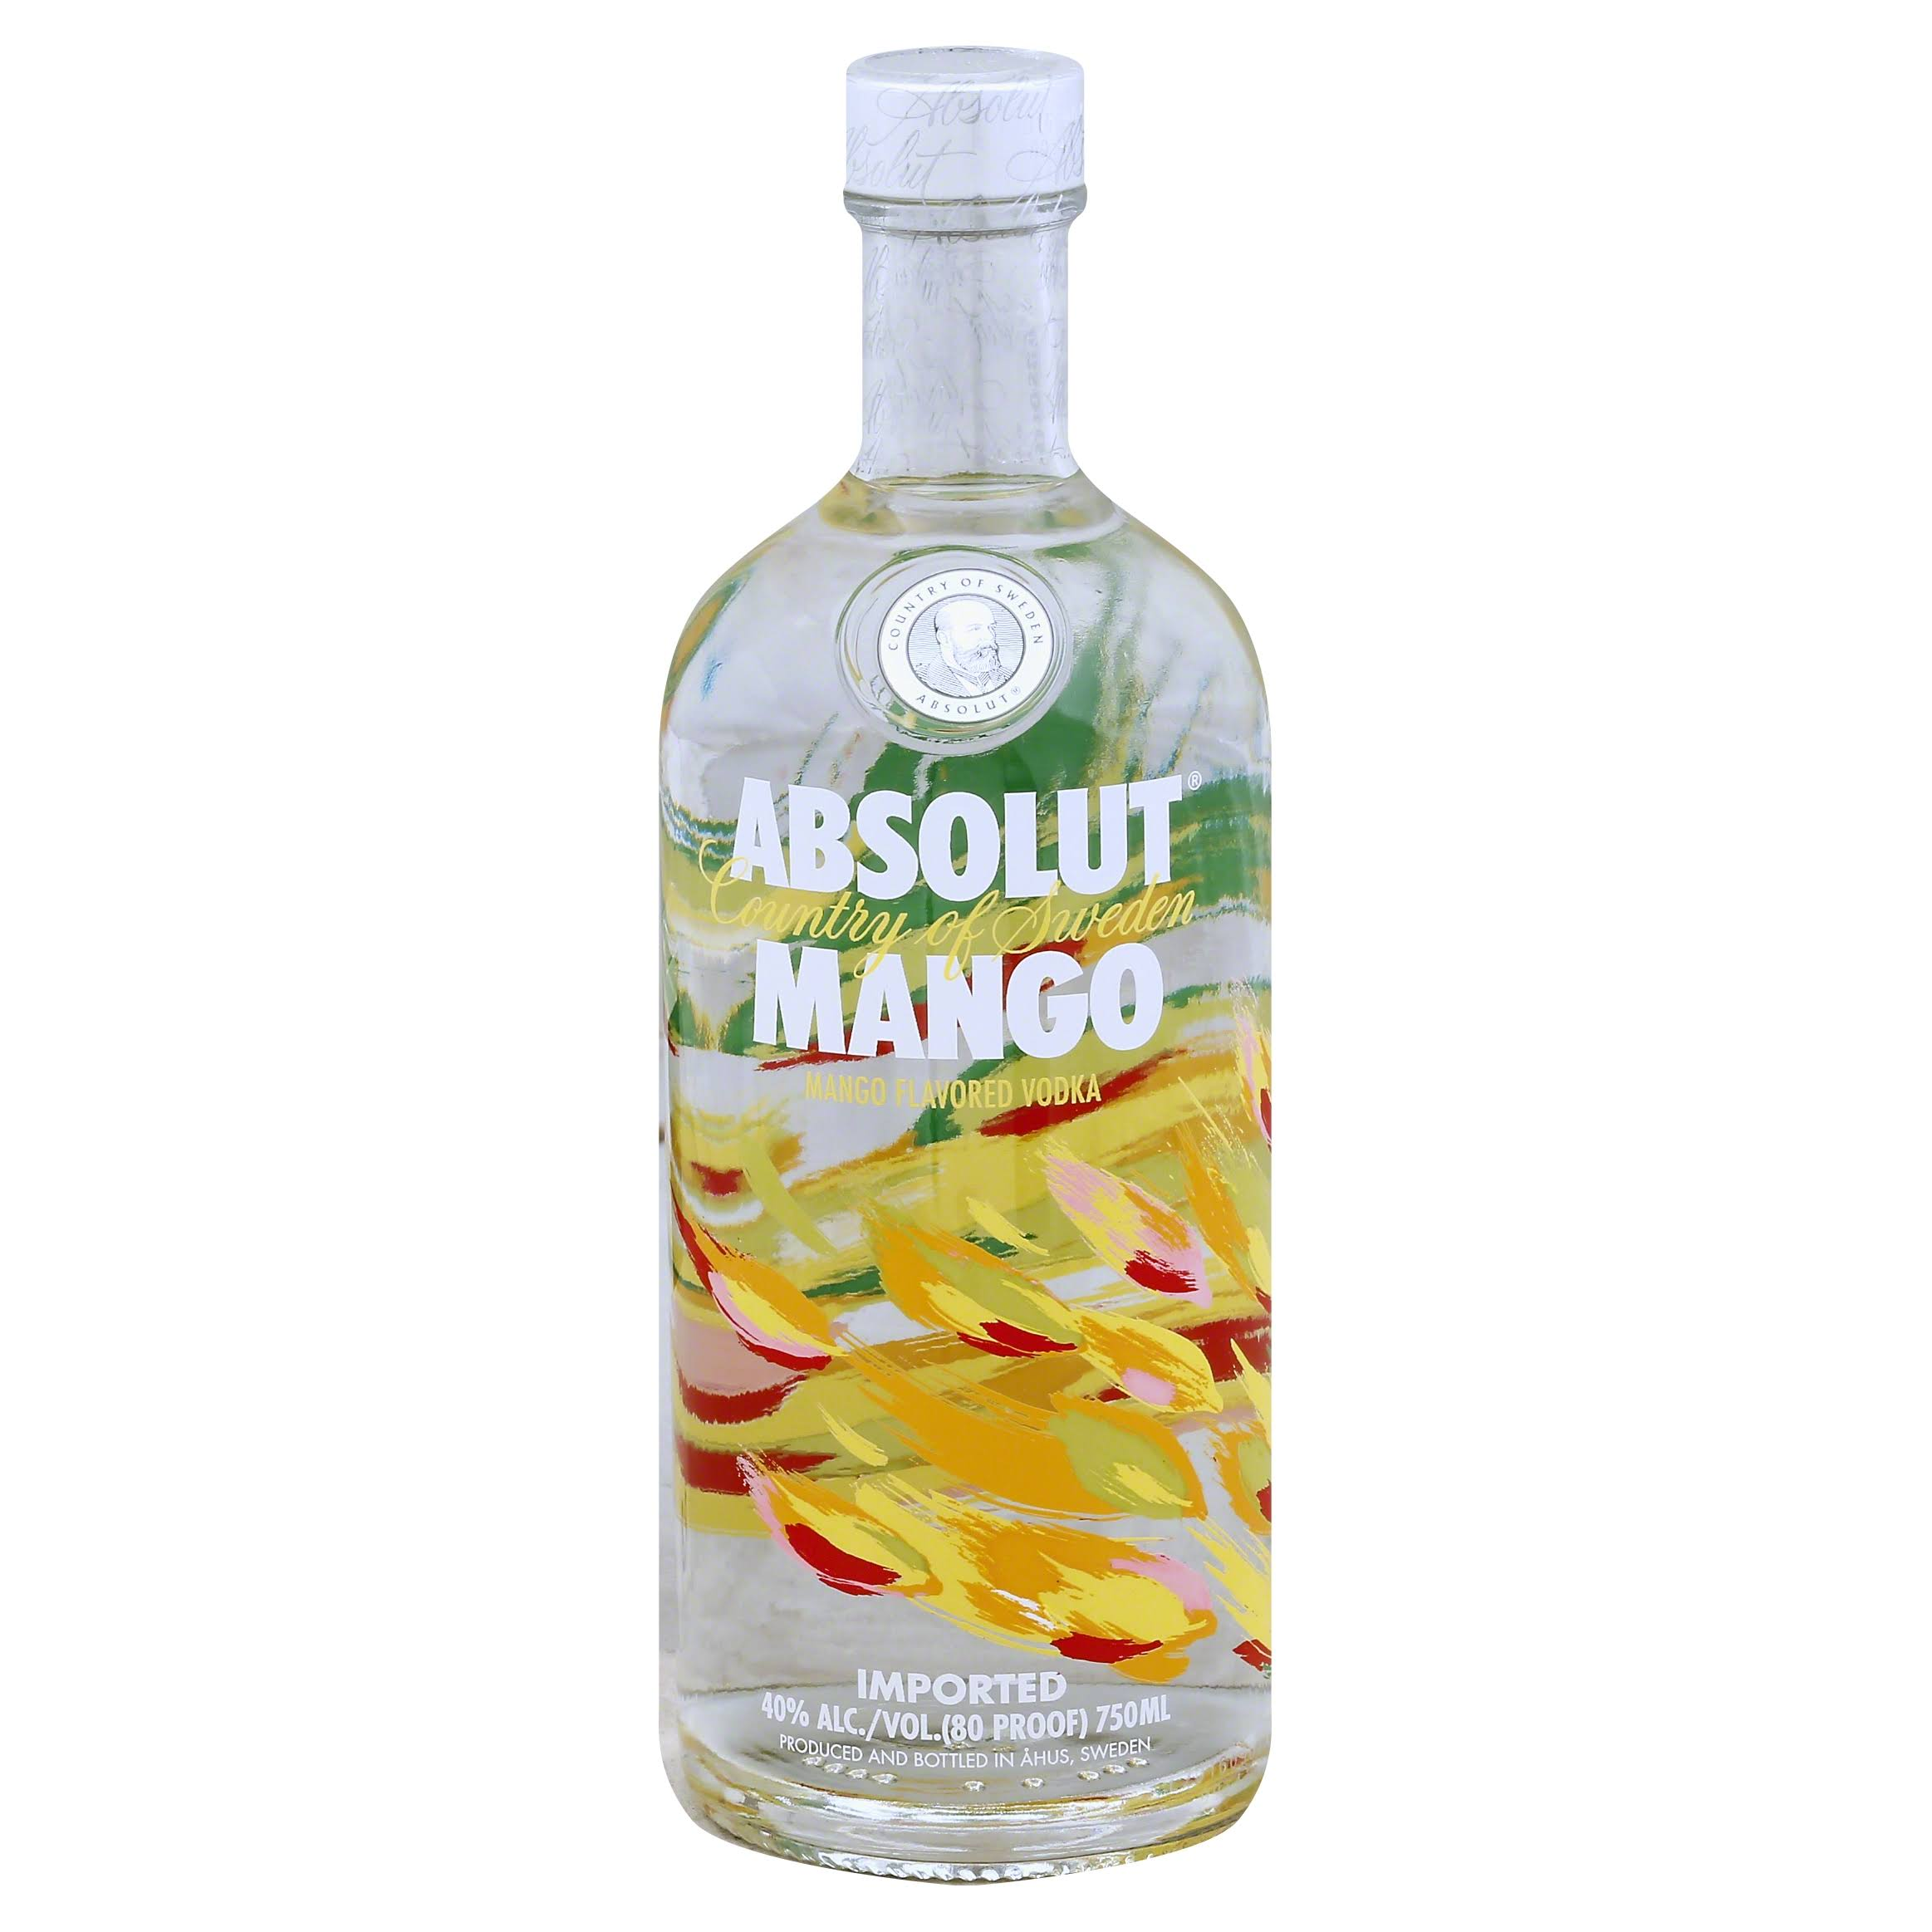 Absolut Vodka - Mango Flavored, 750ml